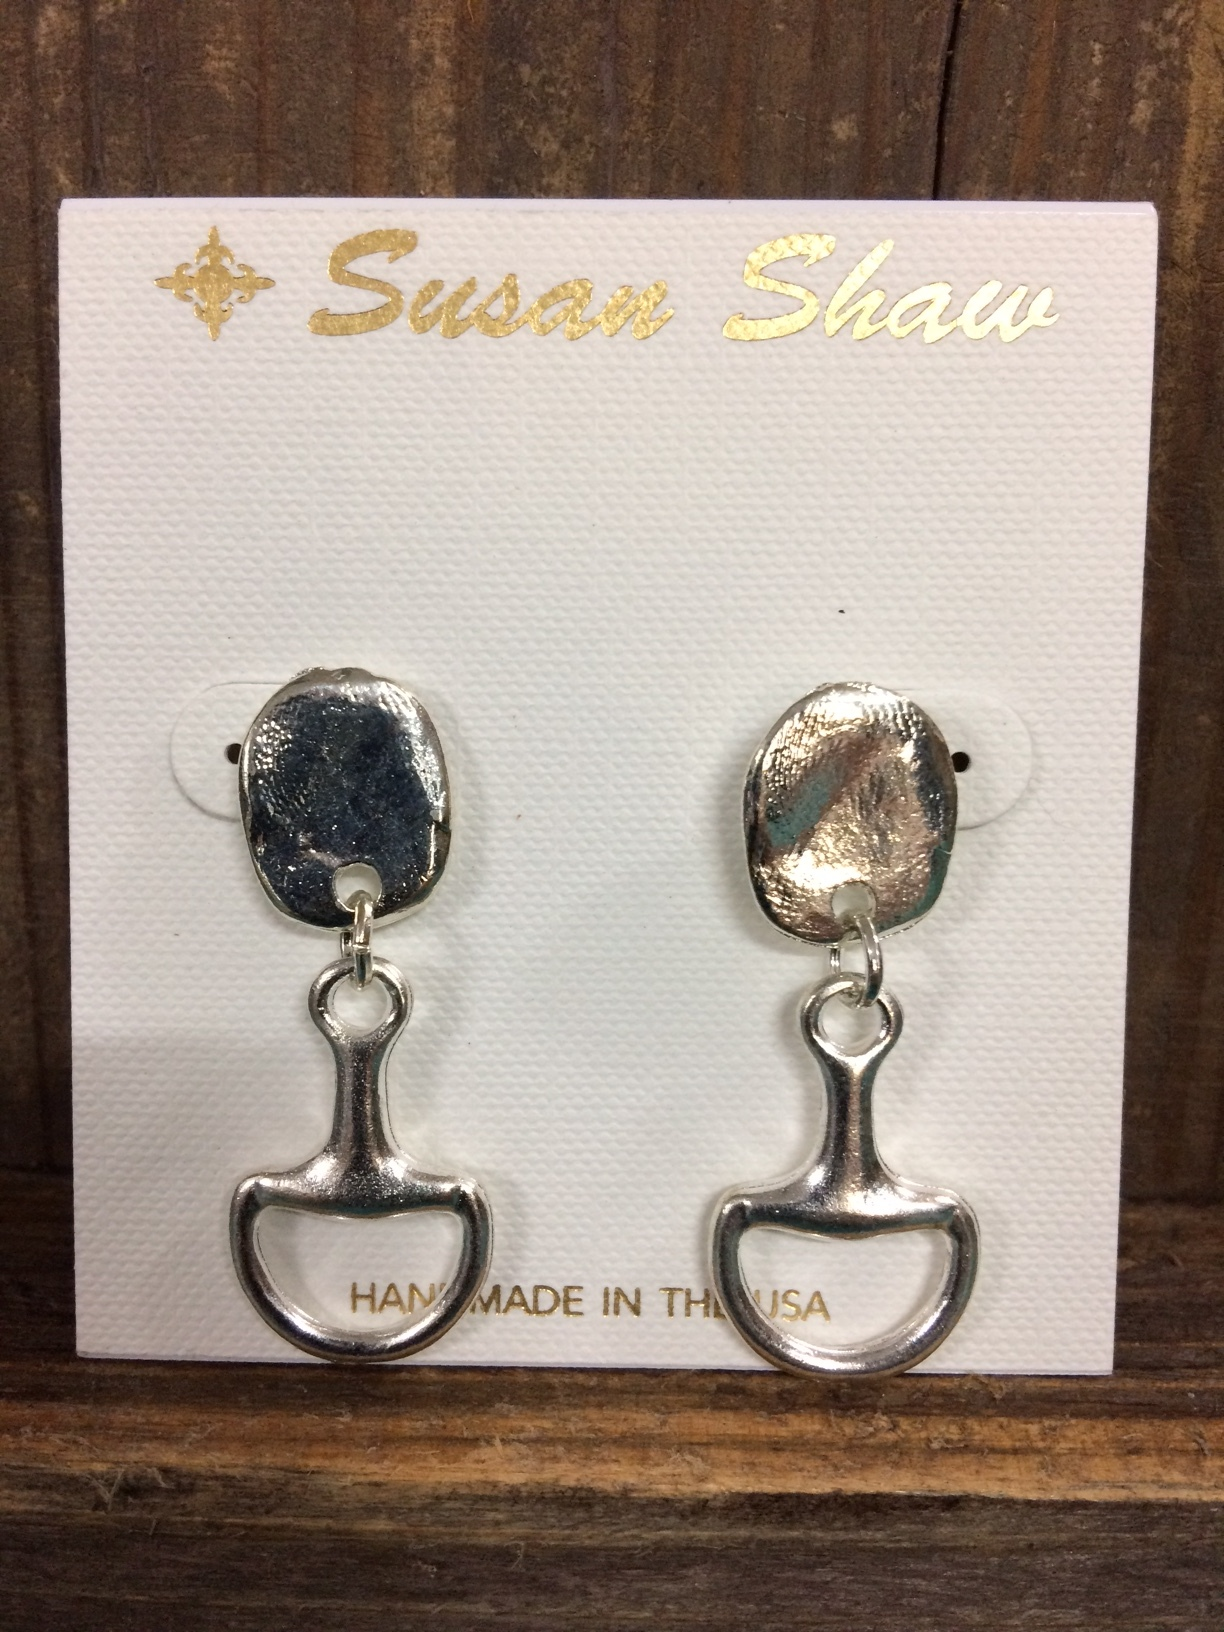 susan-shaw-equestrian-earrings-silver-snaffle